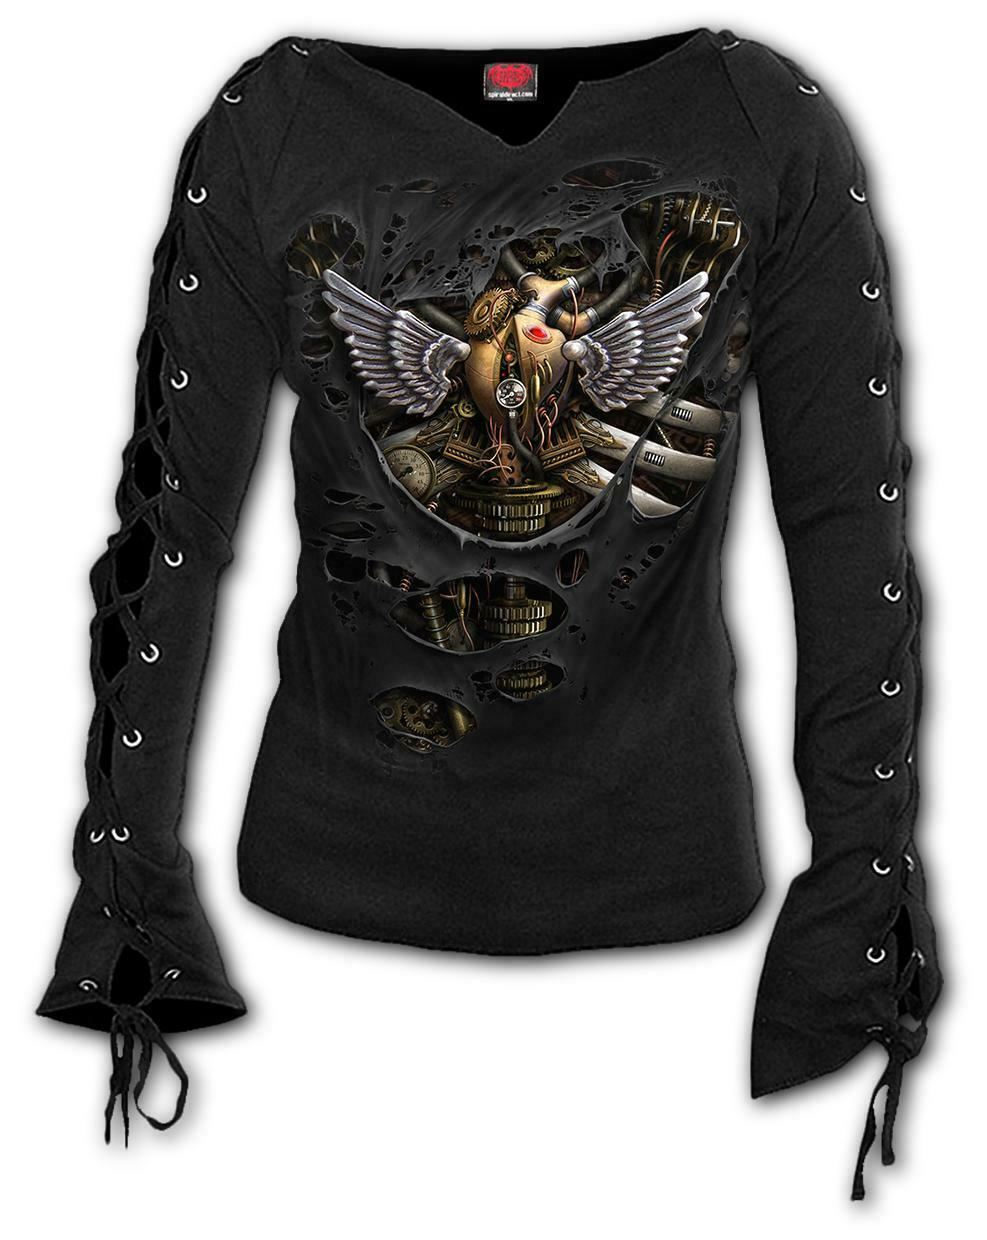 Spiral Direct STEAM PUNK RIPPED Laceup Sleeve Top Goth Ladies Biker Girls Heart